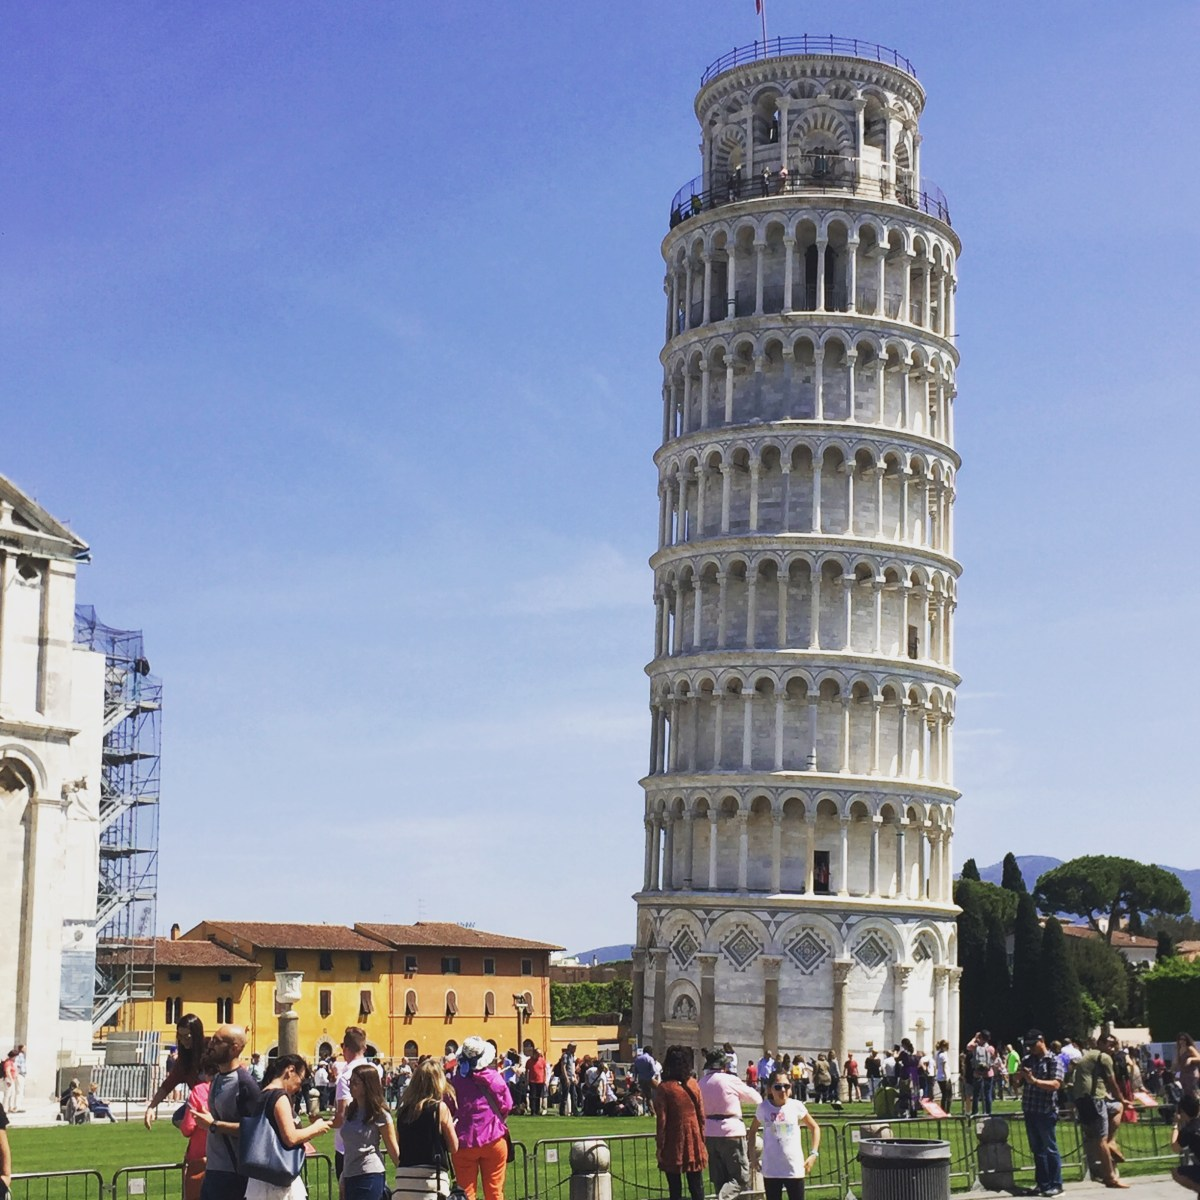 A Cruise Guide to Visiting the Leaning Tower of Pisa